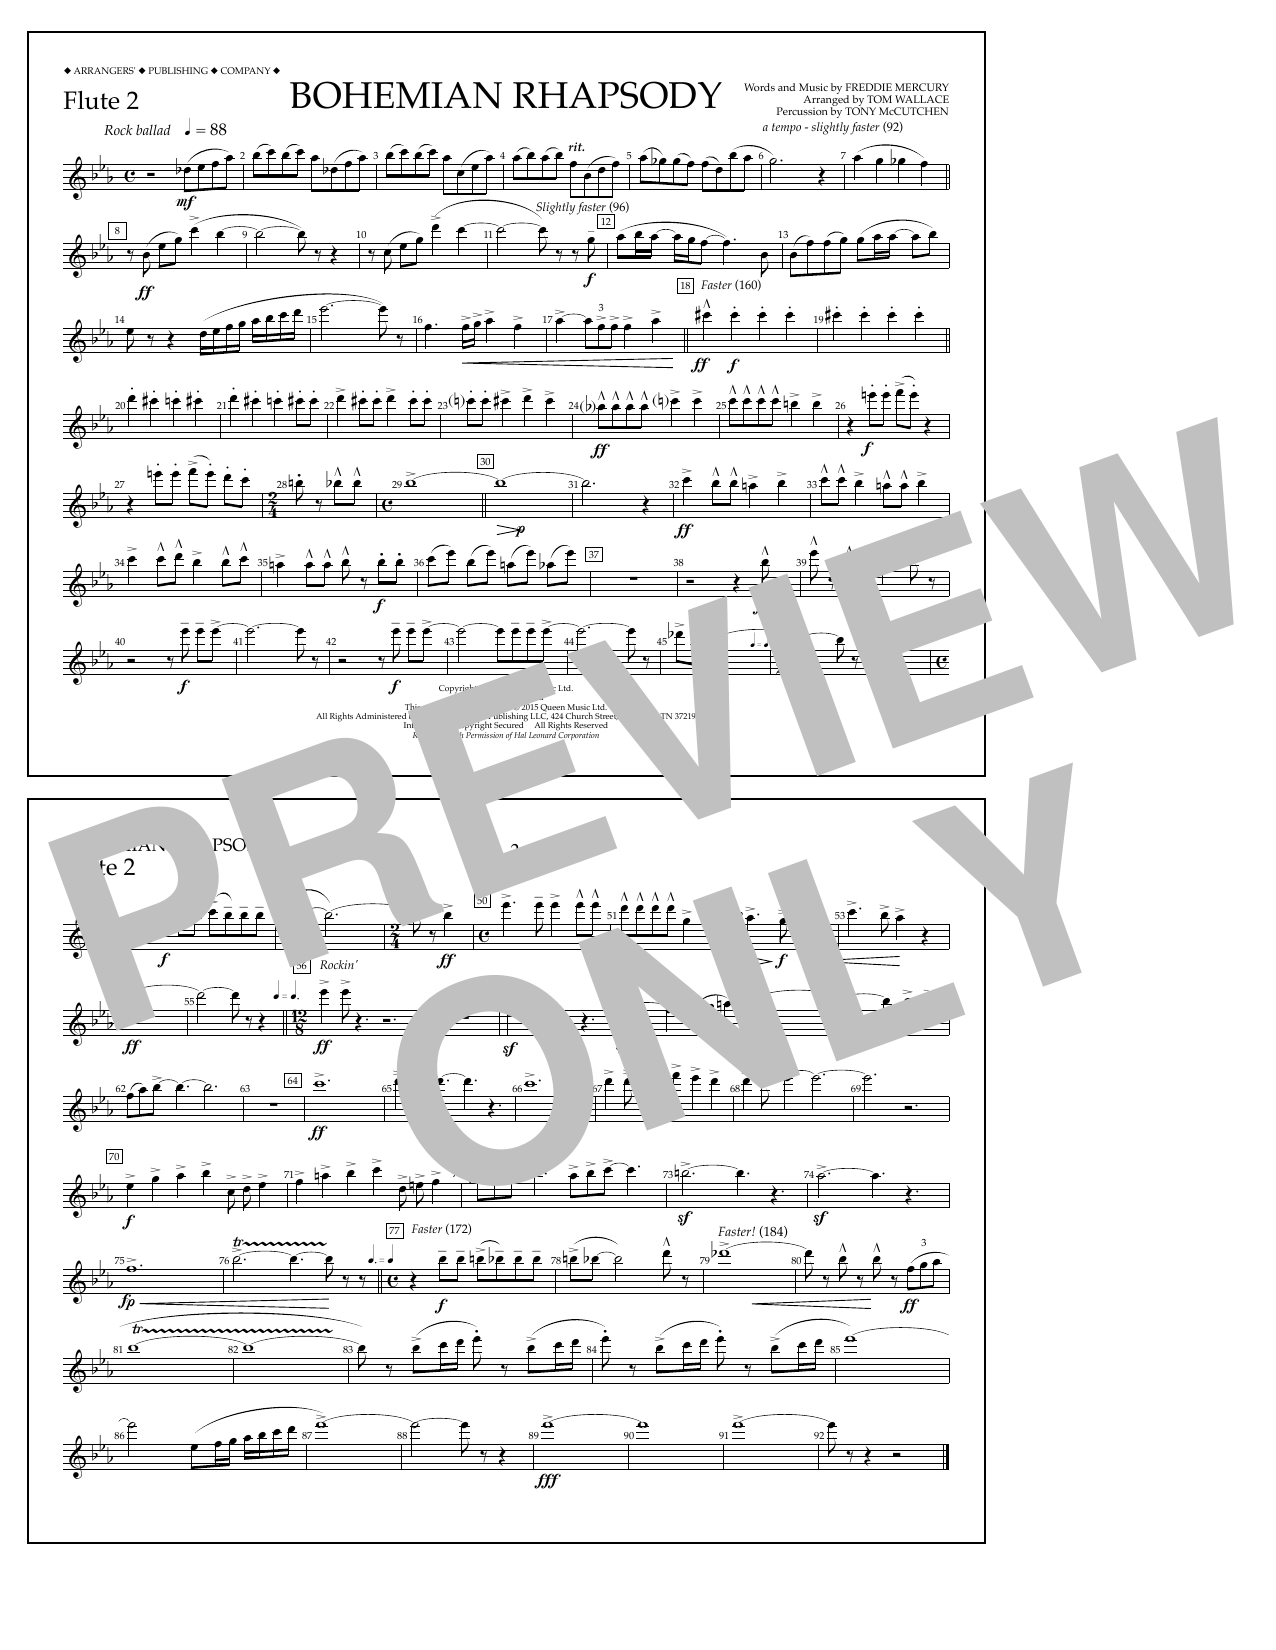 Tom Wallace 'Bohemian Rhapsody - Flute 2' Sheet Music Notes, Chords |  Download Printable Marching Band - SKU: 337582